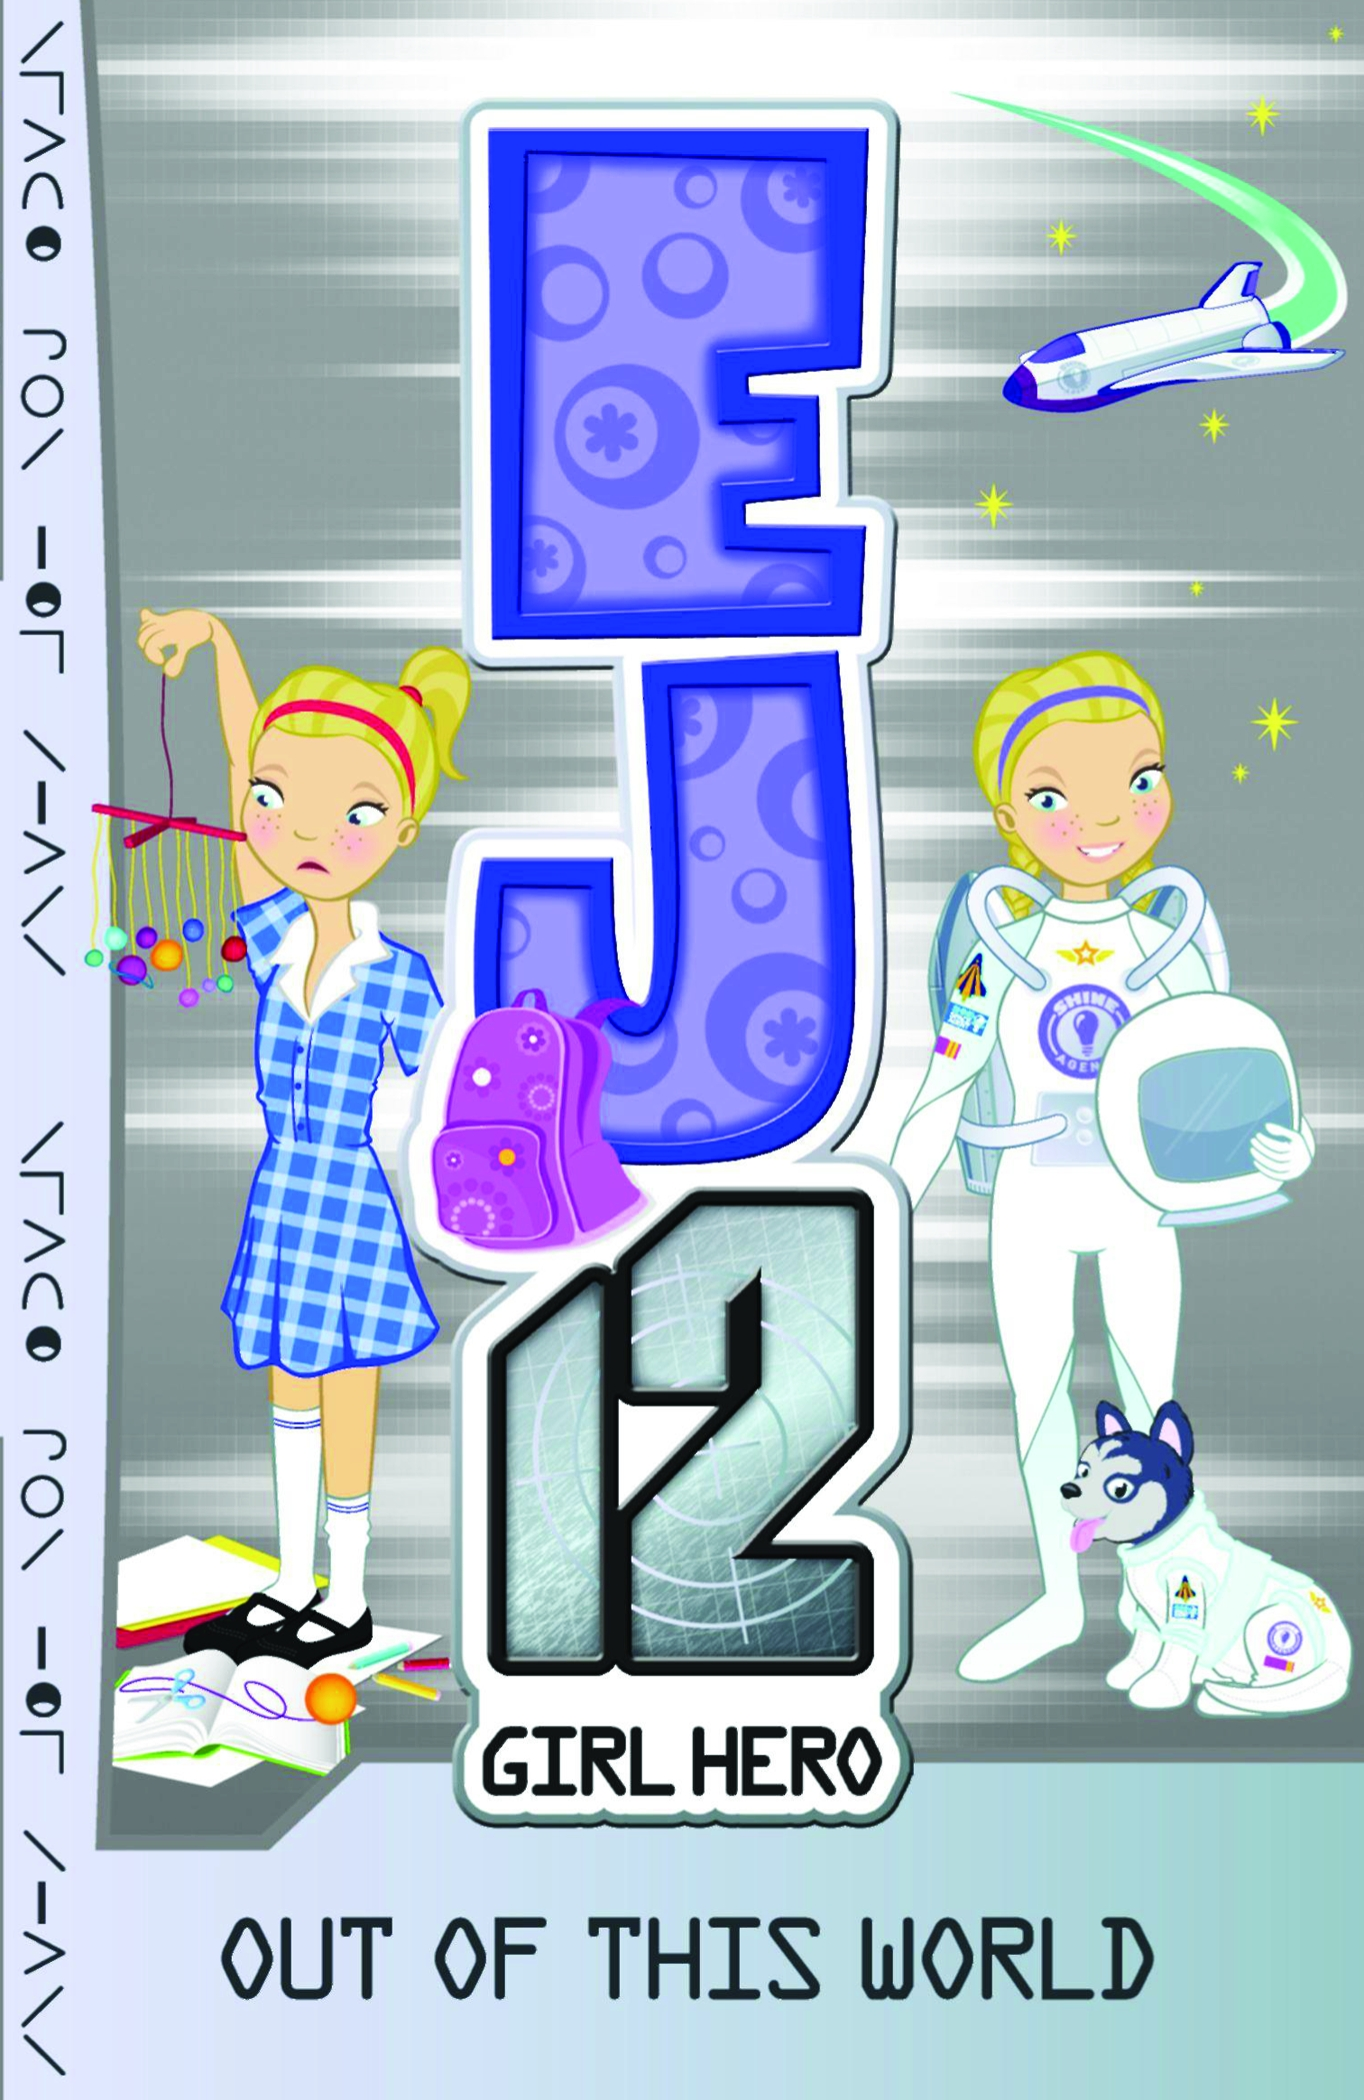 EJ12 Girl Hero 9 Out of this World